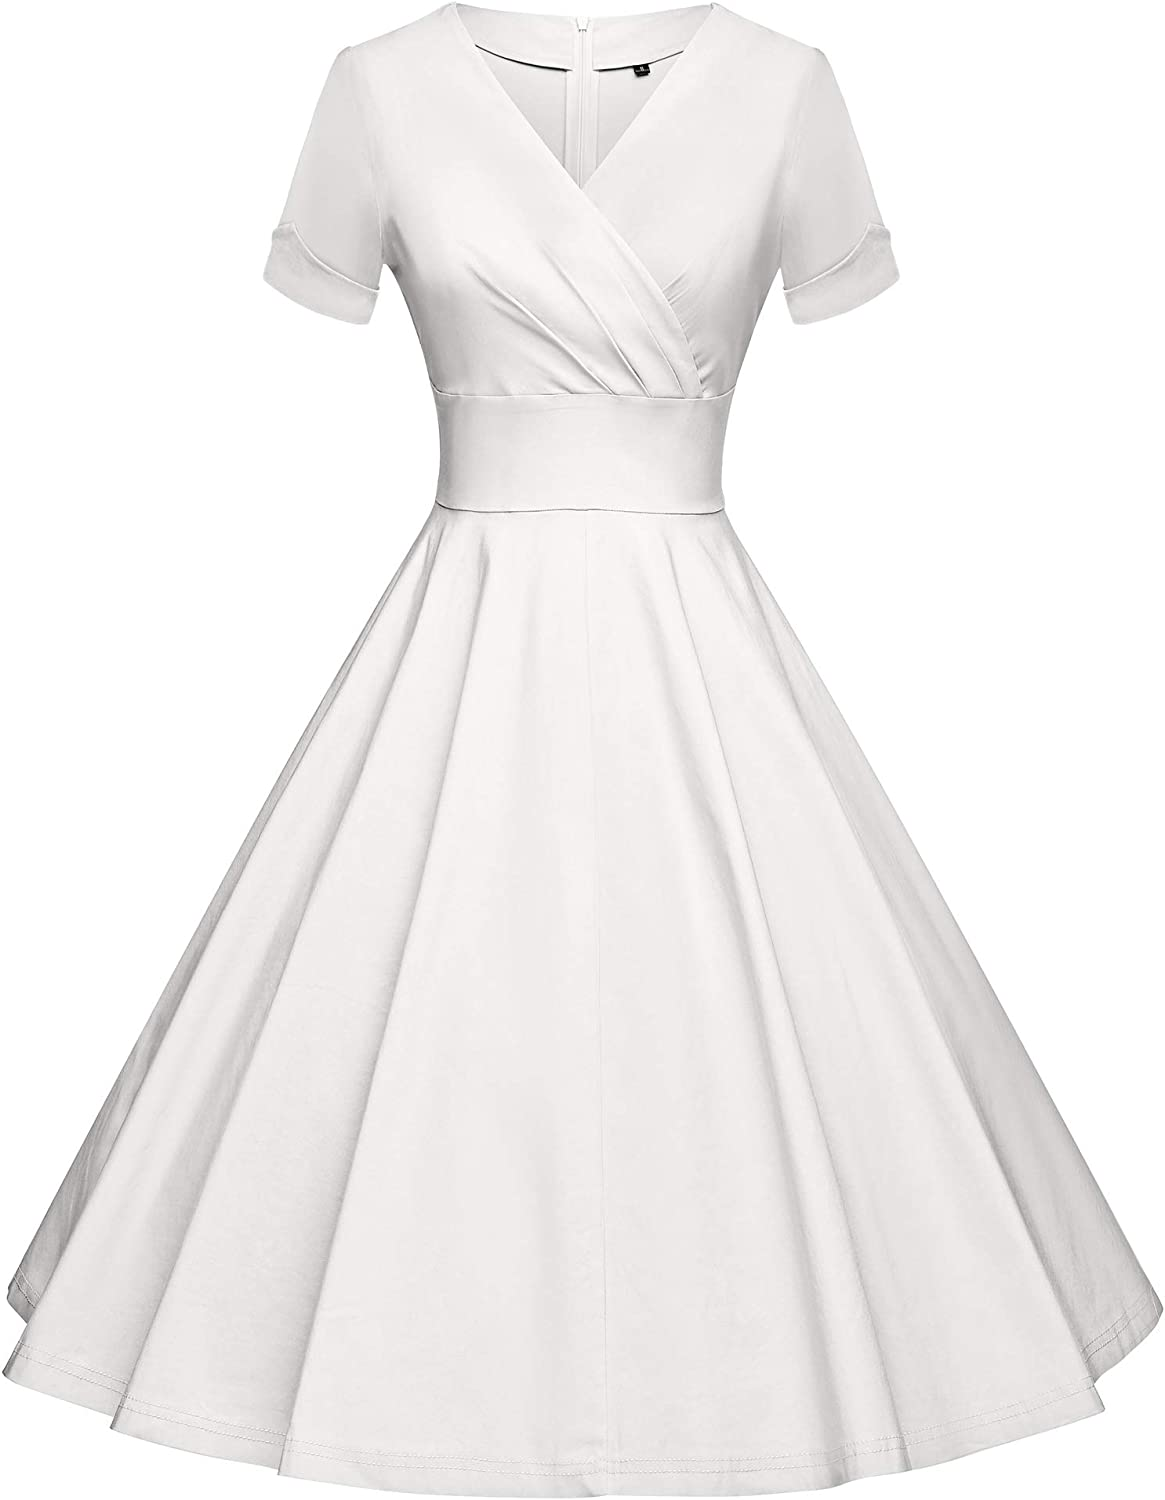 GownTown 1950s Style 3/4 Sleeves Swing Cocktail Dresses with Pocket